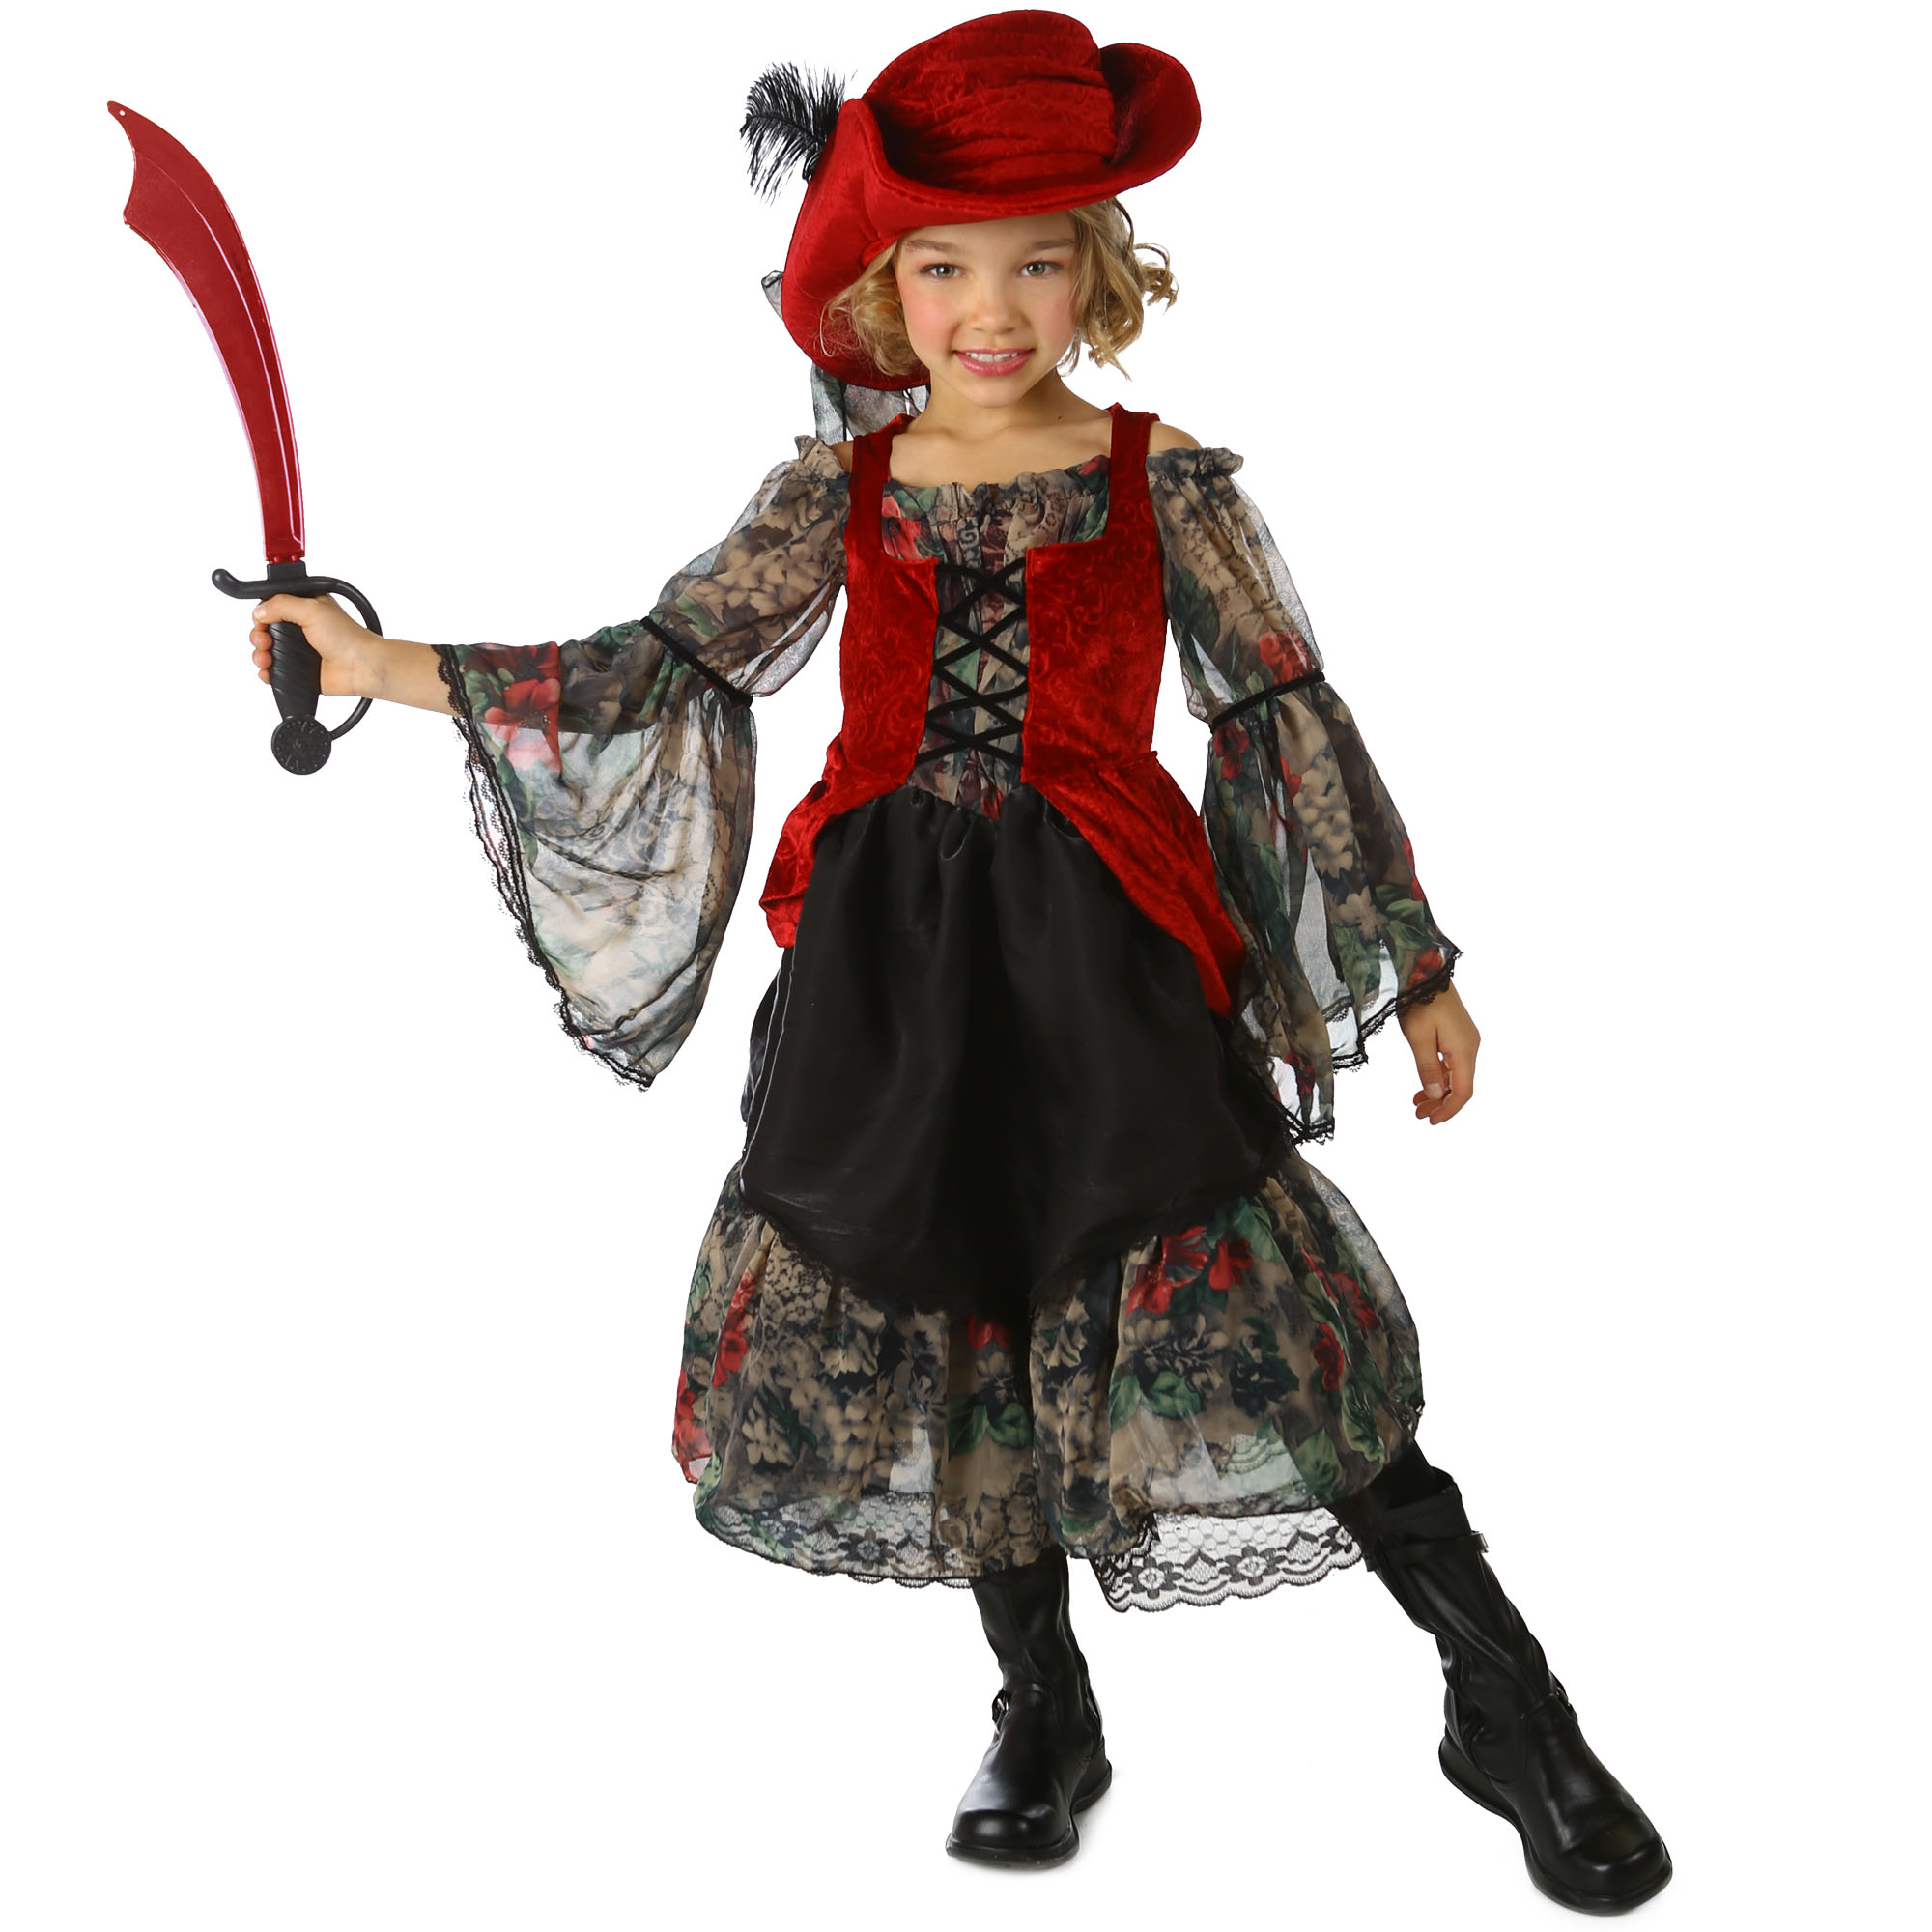 Princess Paradise Premium Pocket Pirate Child Costume